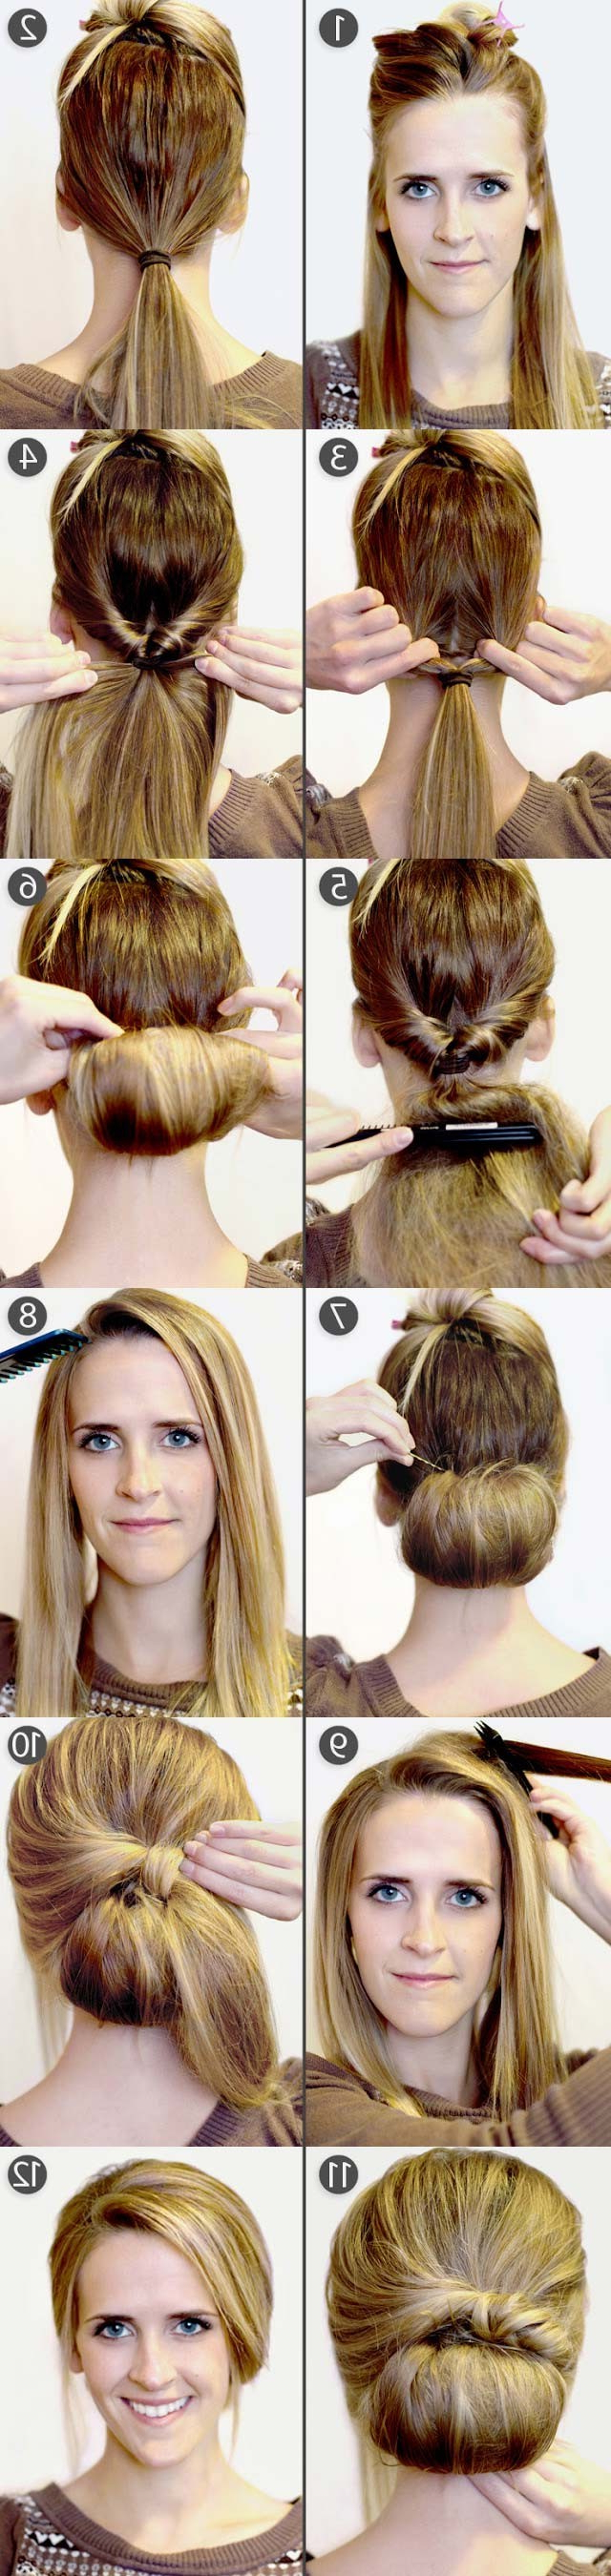 Current Braids And Bouffant Hairstyles In 15 Cute Hairstyles: Step By Step Hairstyles For Long Hair (View 19 of 20)